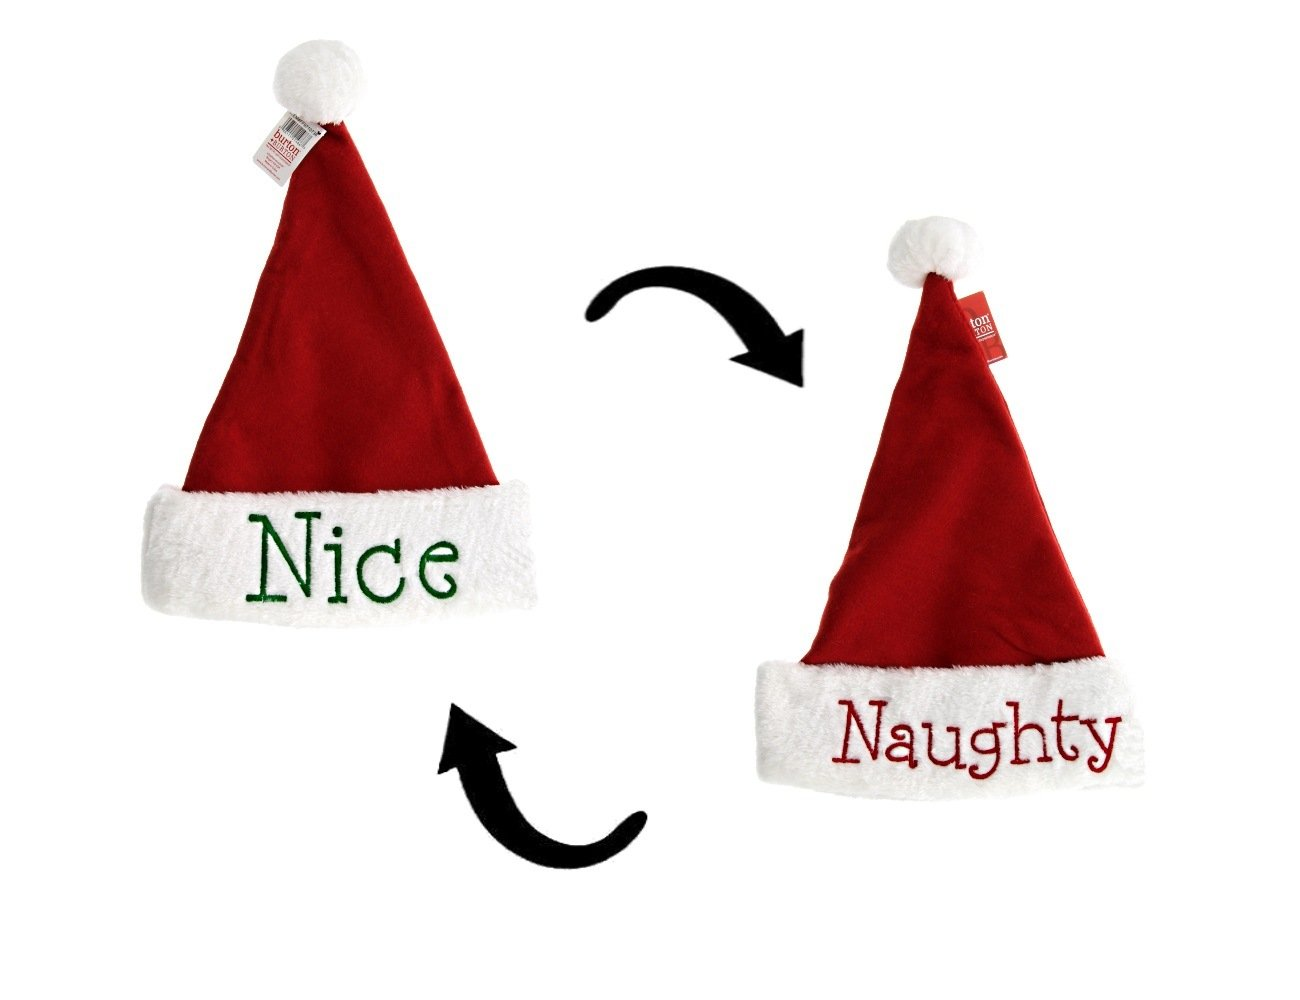 Burton & Burton Naughty or Nice Santa Hats, 4pk, Festive Holiday Christmas Hats with Hand Stitched Naughty in Red on one side and Nice in Green on the other, Reversible (4 Hats) by Burton & Burton (Image #2)